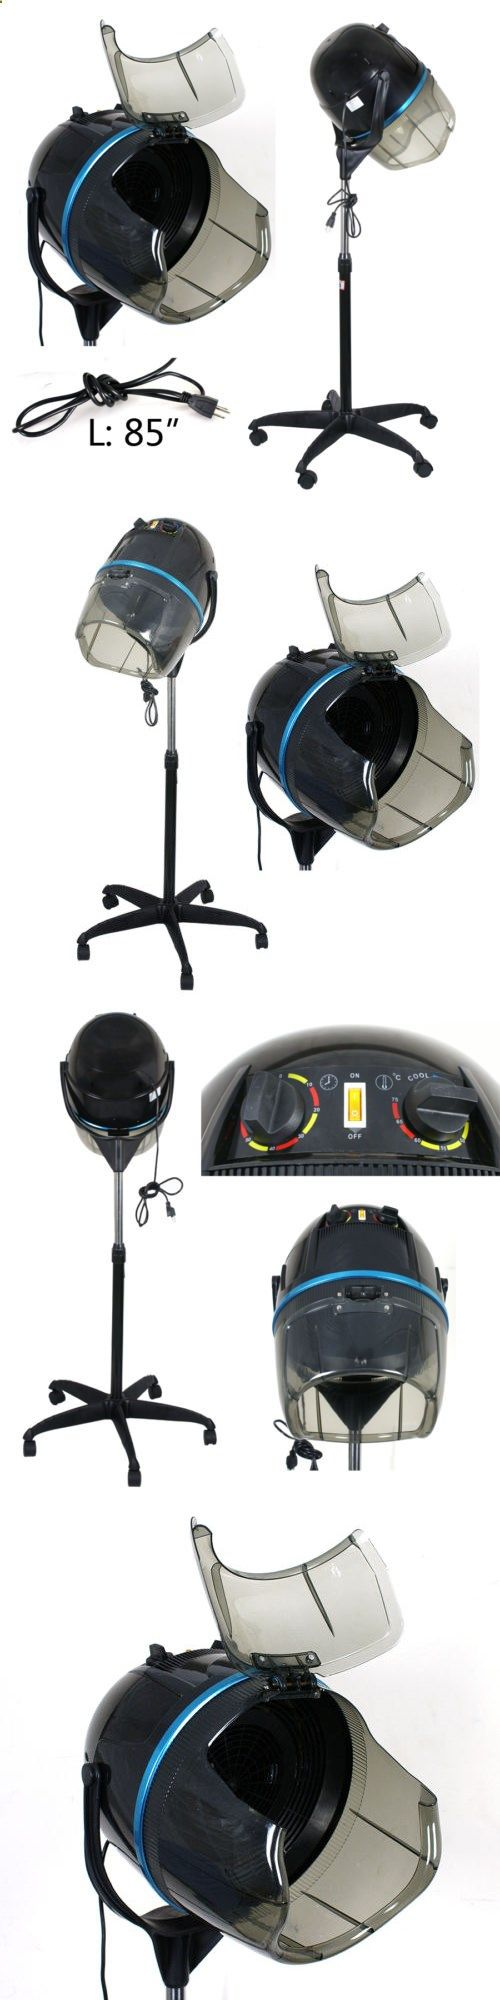 Hair Dryers: Floor Bonnet Stand Up Salon Hair Dryer With Casters 1300W Bonnet Hood Dryer New -> BUY IT NOW ONLY: $91.09 on eBay!